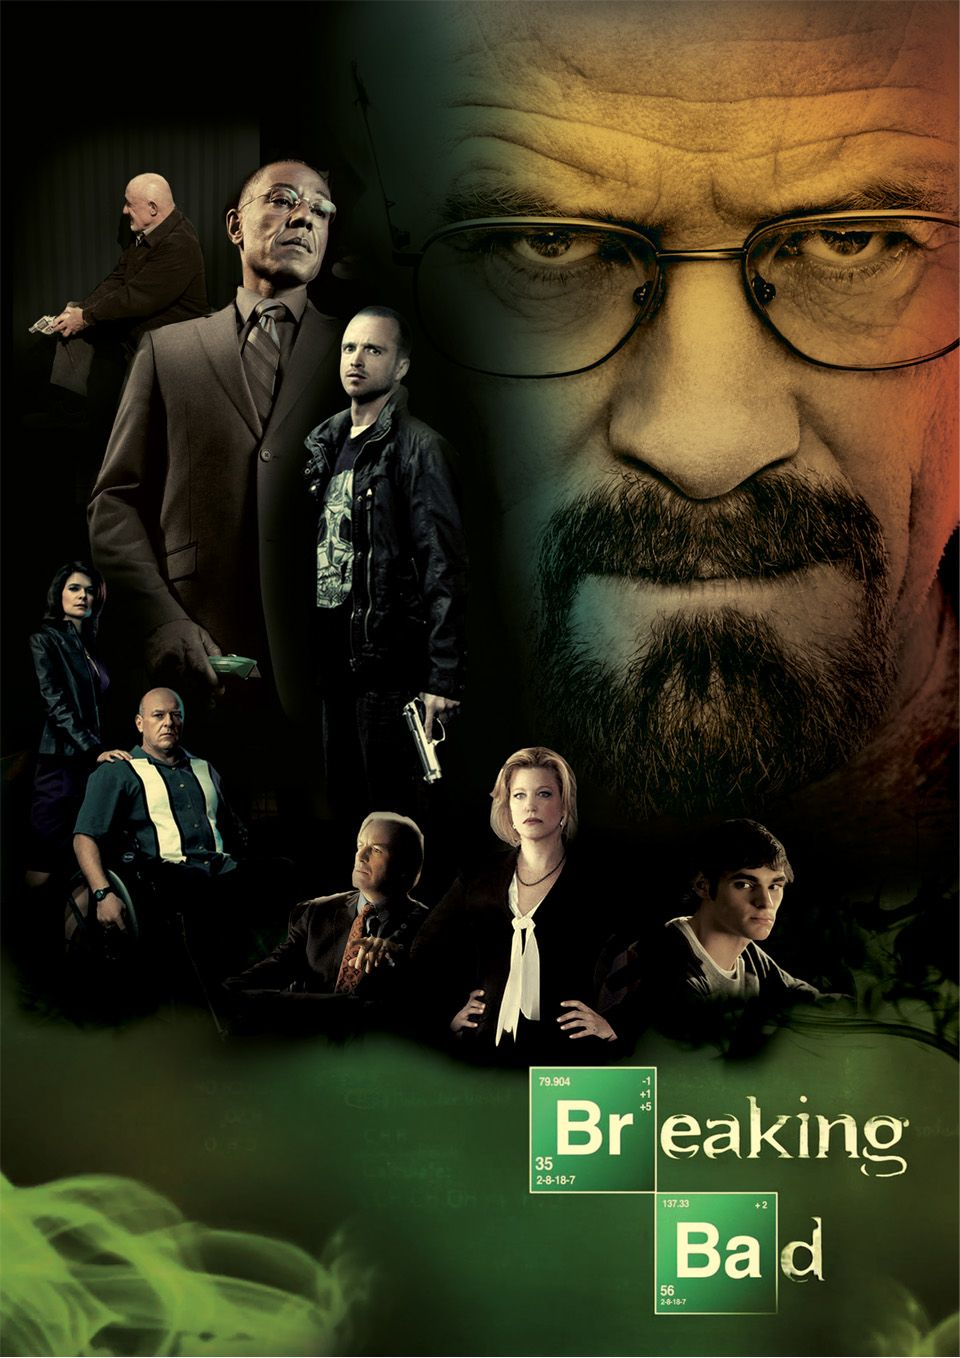 Pin by Ivan Khh on Breaking Bad/ Better Call Saul | Pinterest | Call ...